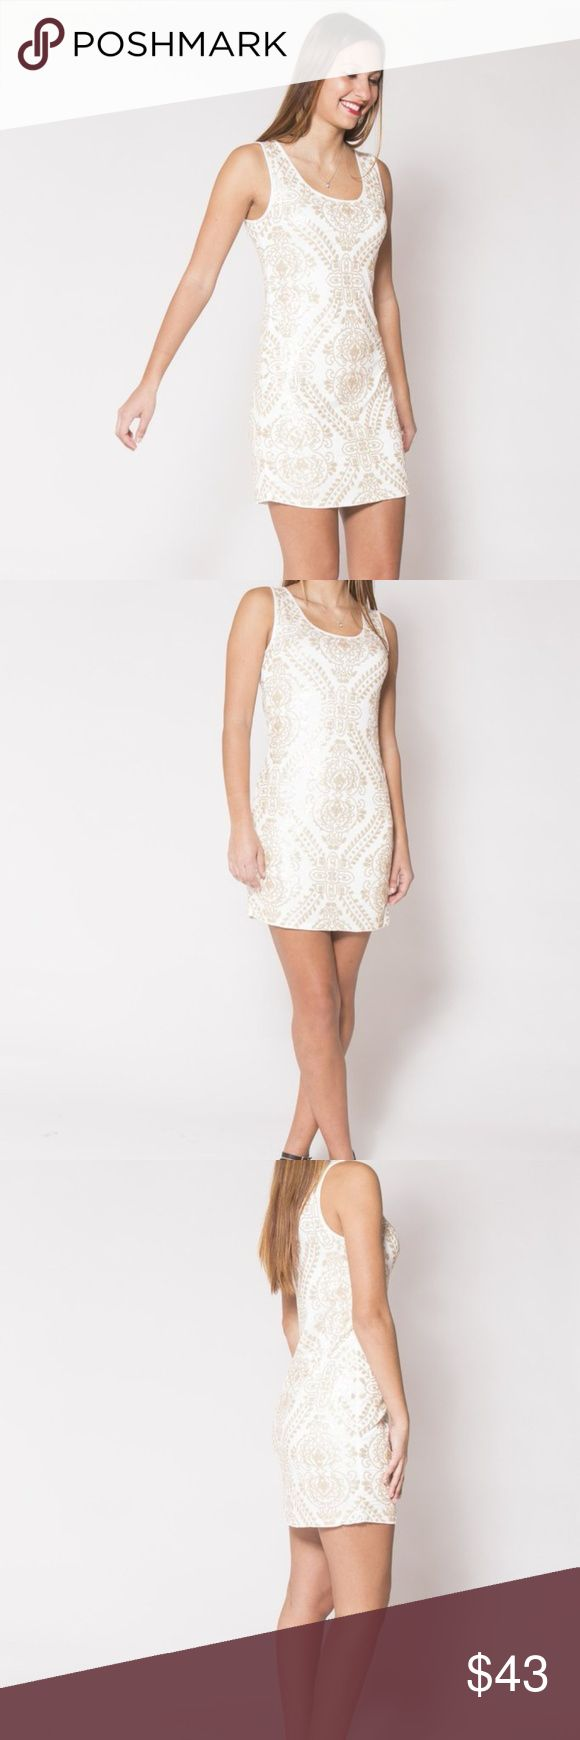 "Classy White Sequin Dress Want to look classy and sparkly at the same time?  We got the item for you.  This perfectly stretch dress is great for your next sophisticated party.  The sequin pattern is unique and perfectly subtle for the holidays.  Wear your coat over and put on some sparkly pumps - you'll feel like a million bucks!   Model is 5'8"" Outer shell - 95% polyester; Inner Lining - 5% Spandex 34 1/2"" long  Small is 0-4. Medium is 6. Large is 8. Dresses"